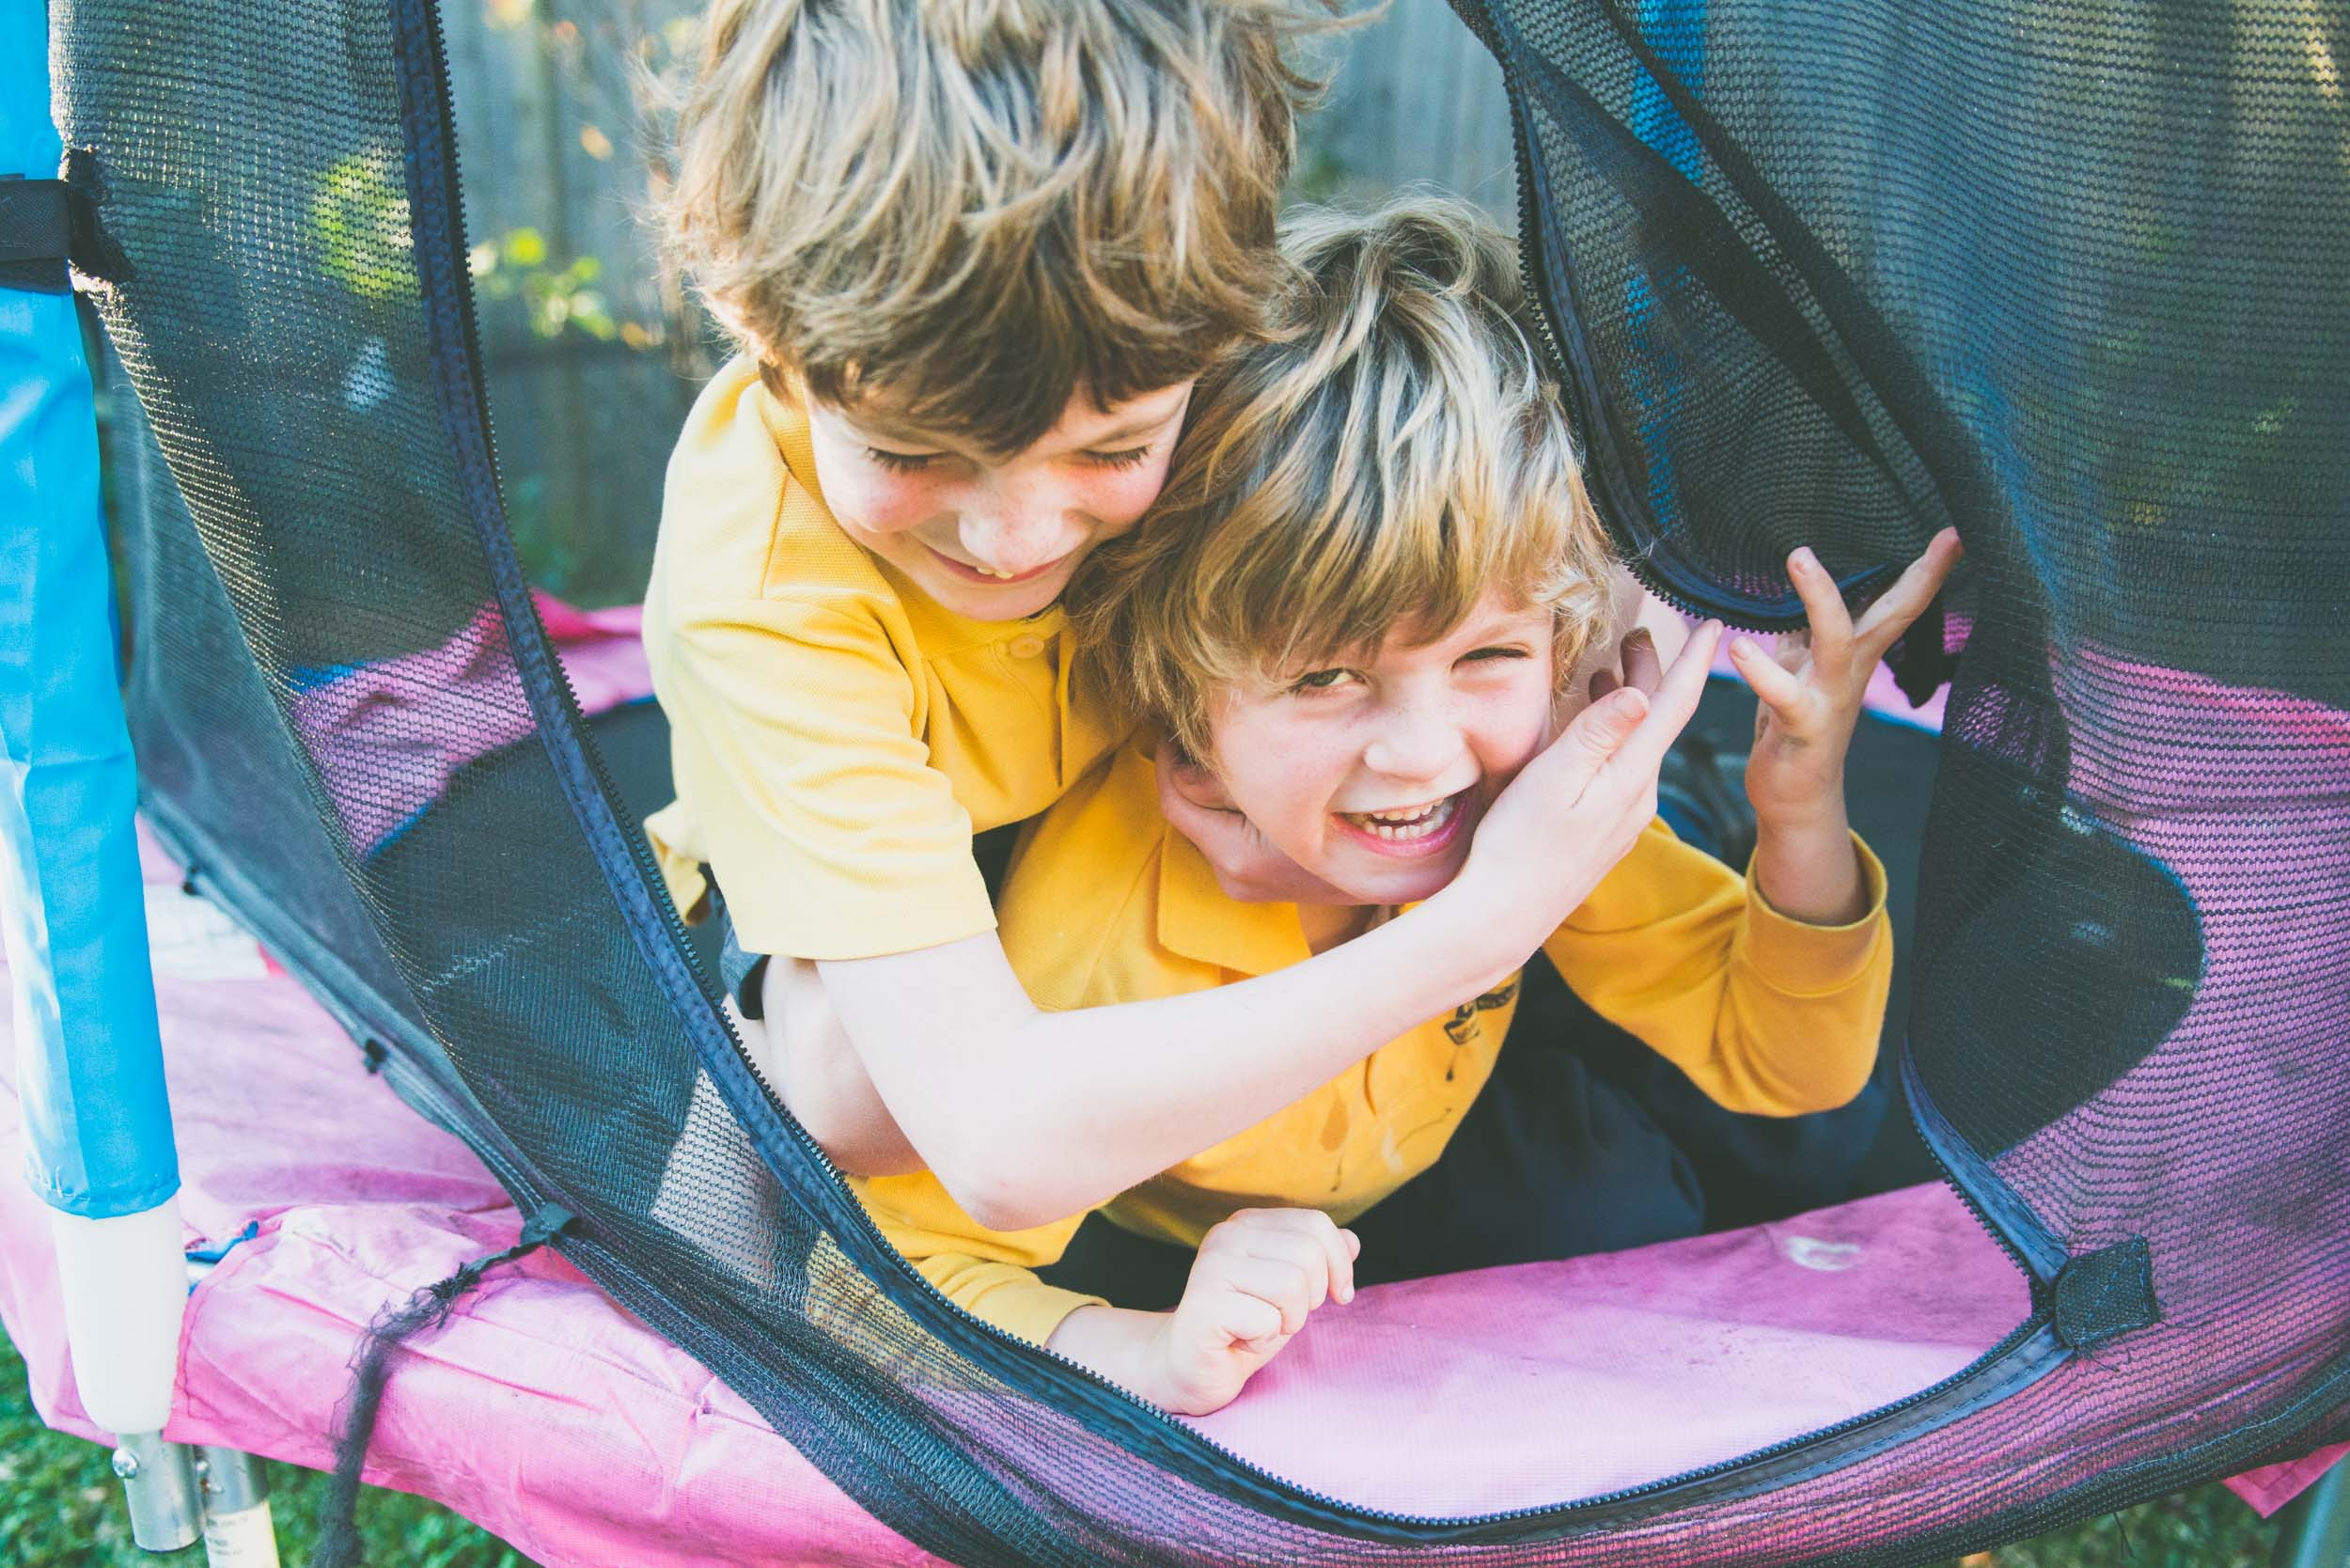 Kids on trampoline - Family - Photo credit Nicola Bailey.jpg